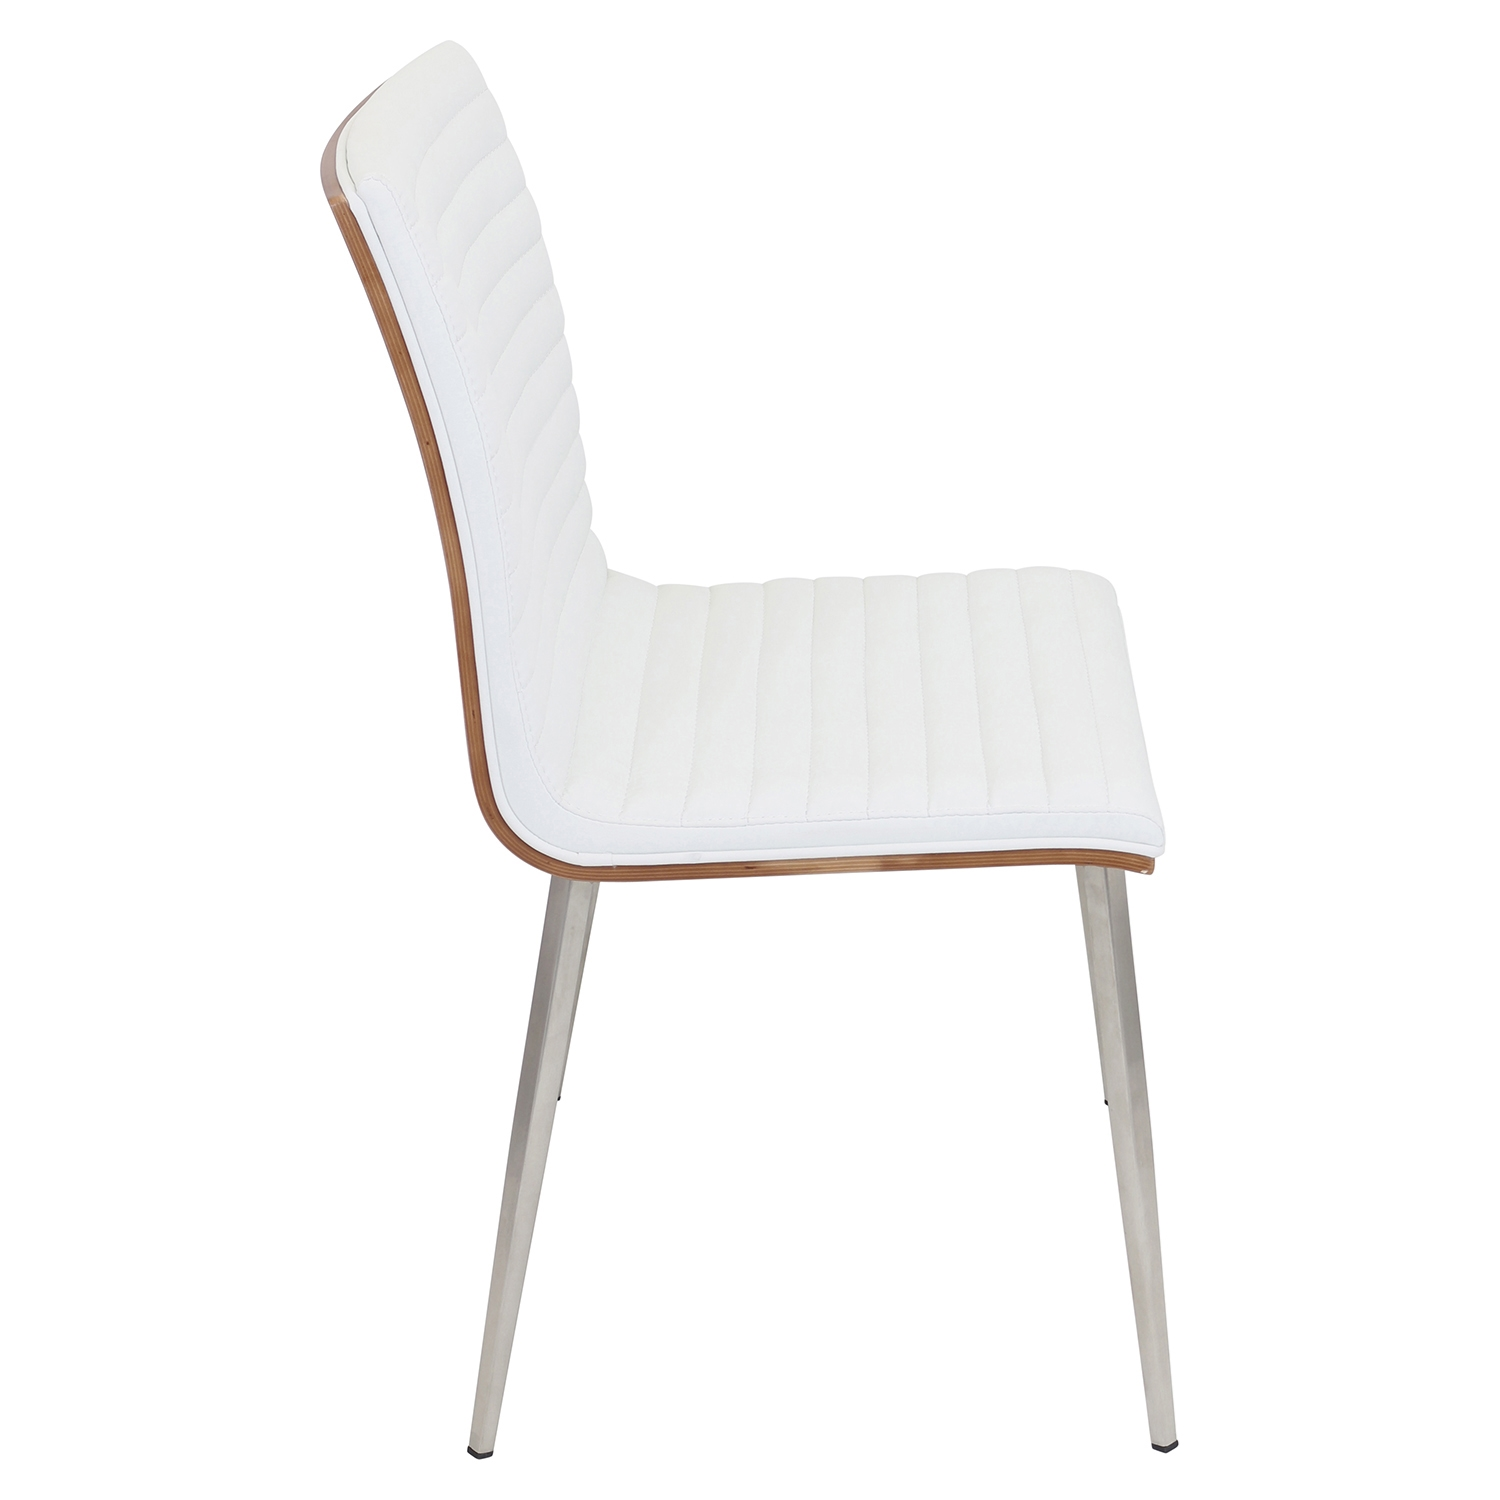 Mason Leatherette Dining Chair - Walnut, Off-White (Set of 2) - LMS-CH-MSN-WL-W2